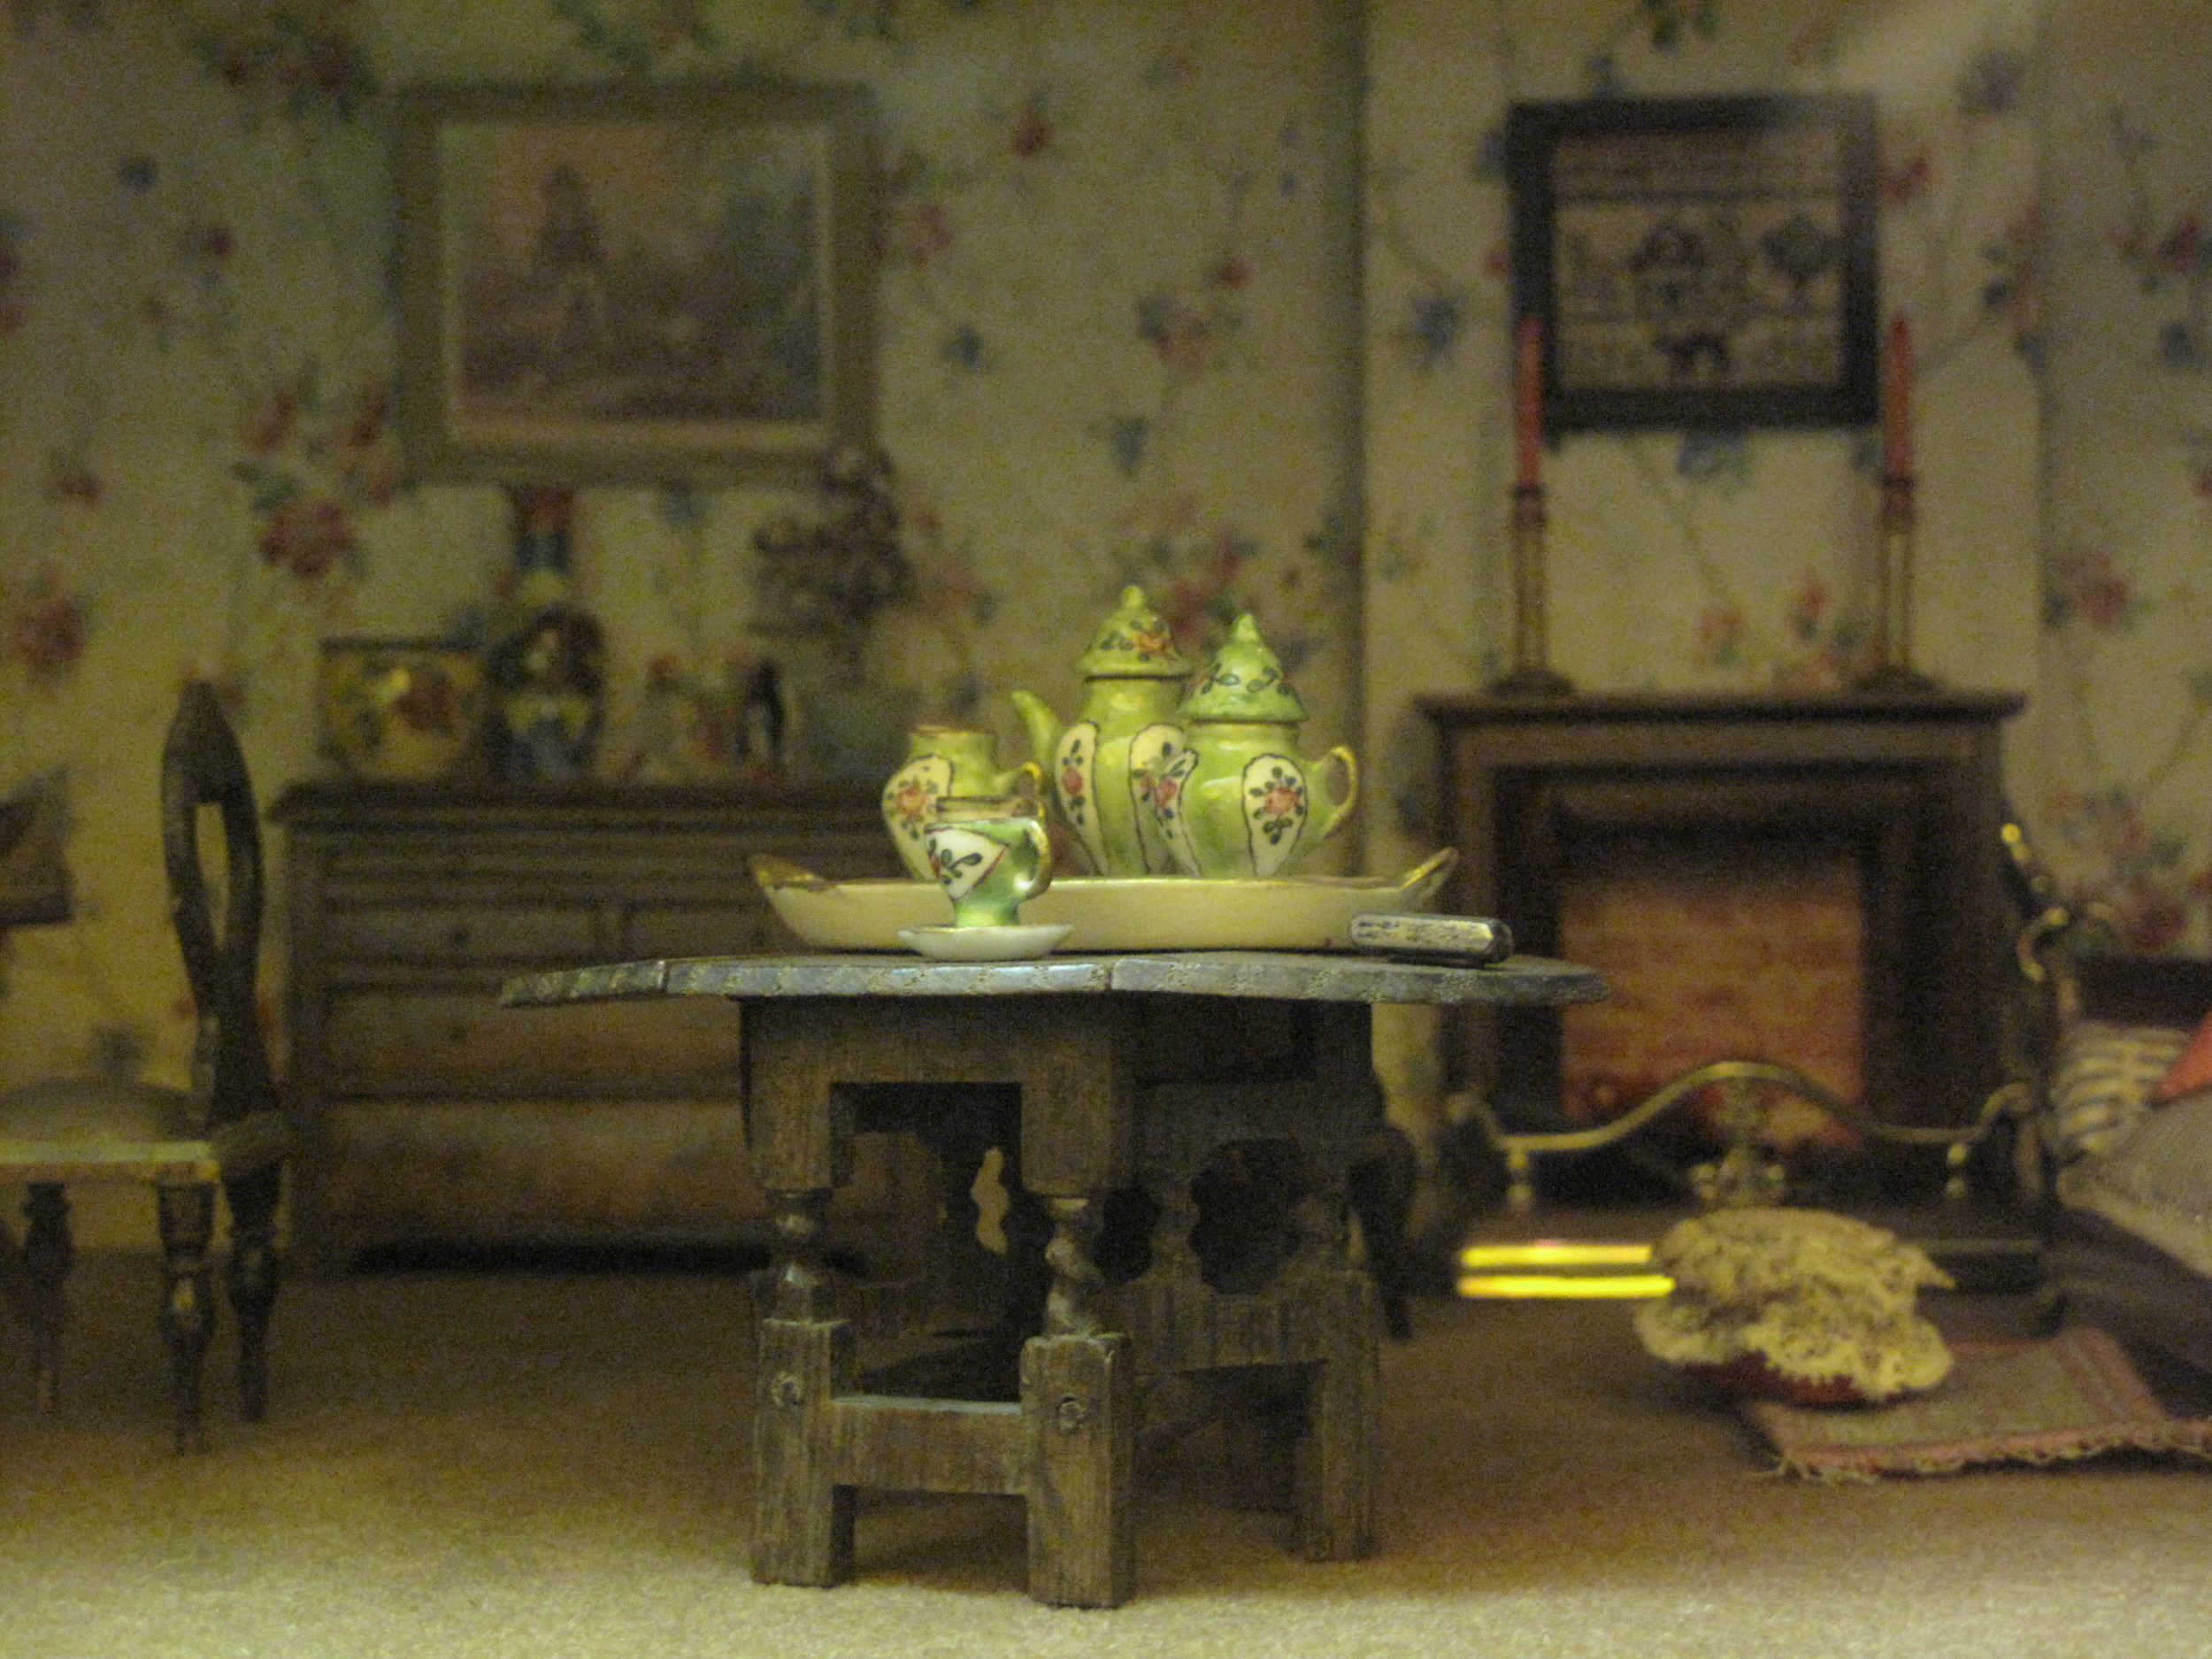 Tiny tea set in a doll's house.